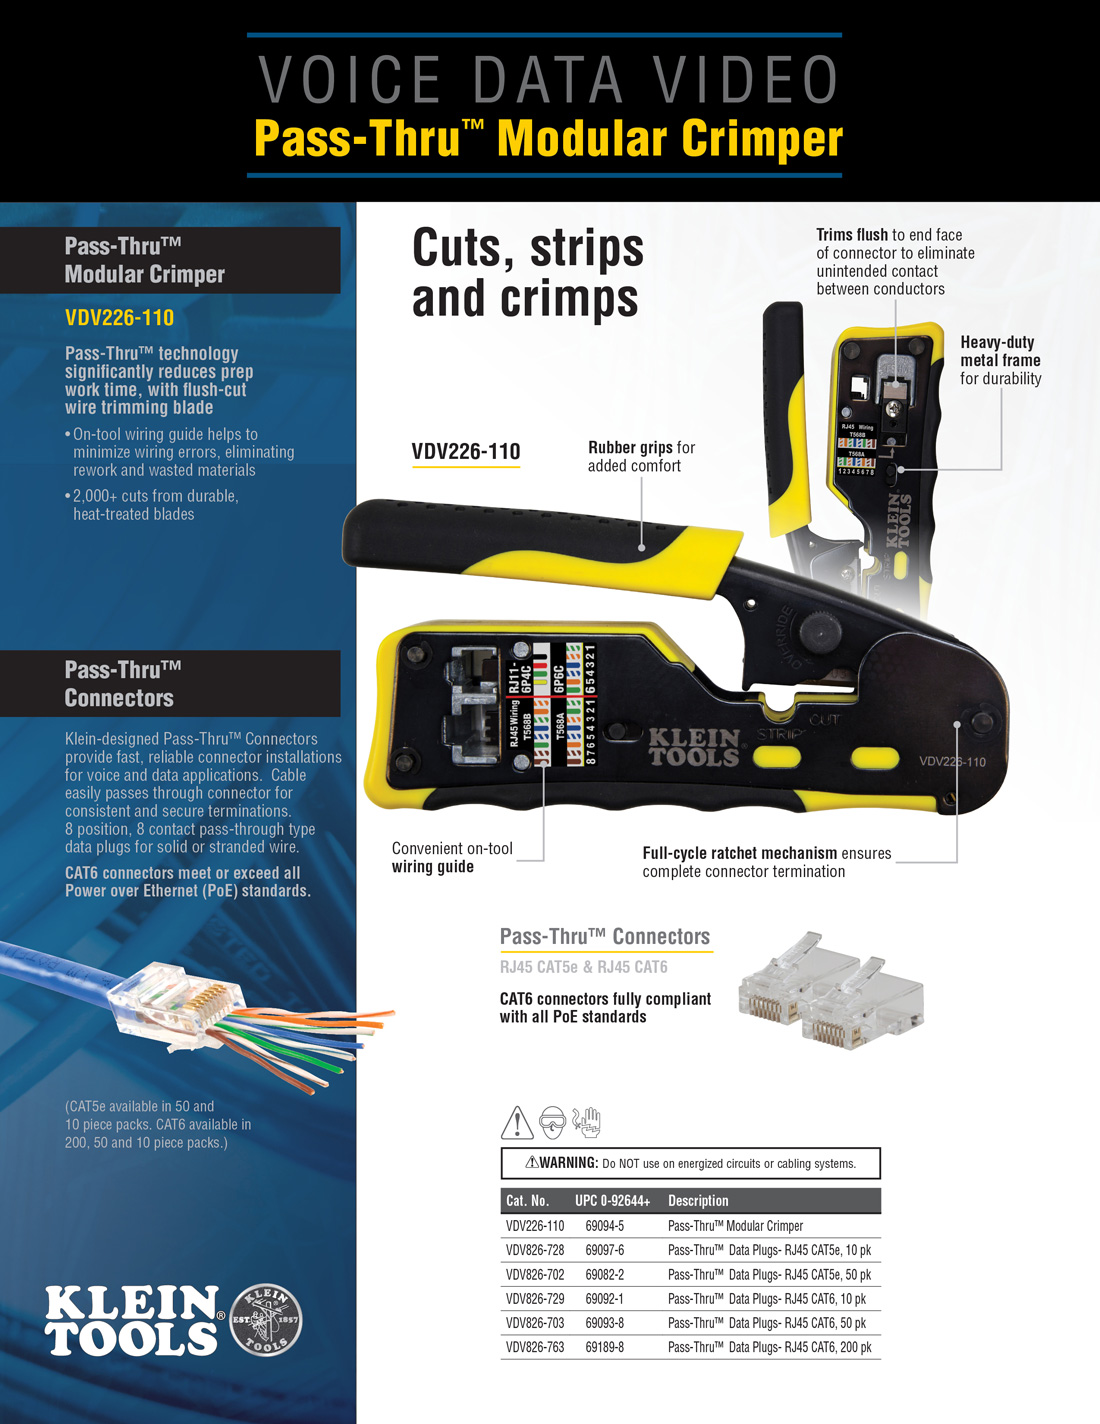 cat 5 wiring diagram straight through 1978 ford f150 fuse box klein tools 6 in pass thru modular crimper vdv226 110 the home depot click here to see which electrical you should use for your project